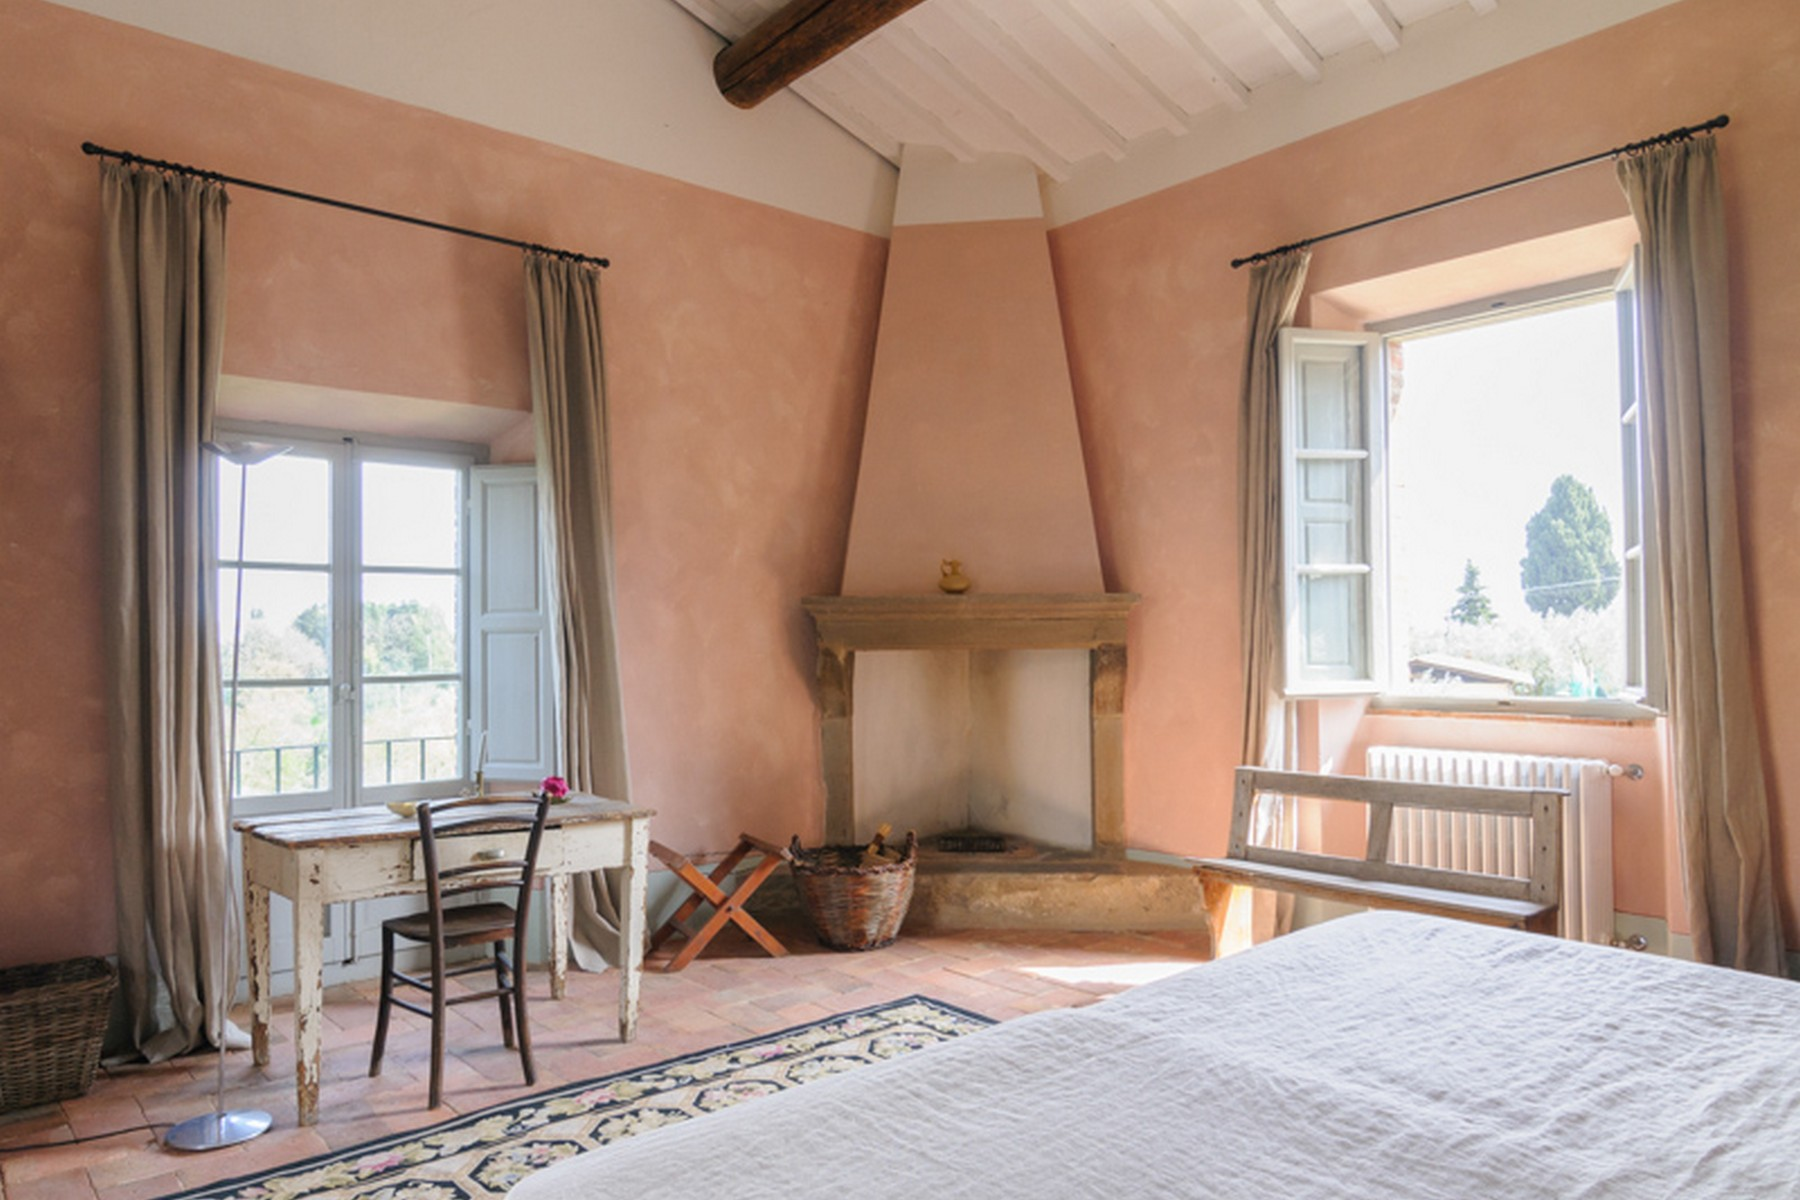 Additional photo for property listing at Splendid villa between Siena and Arezzo Monte San Savino Arezzo, Arezzo 52048 Italia